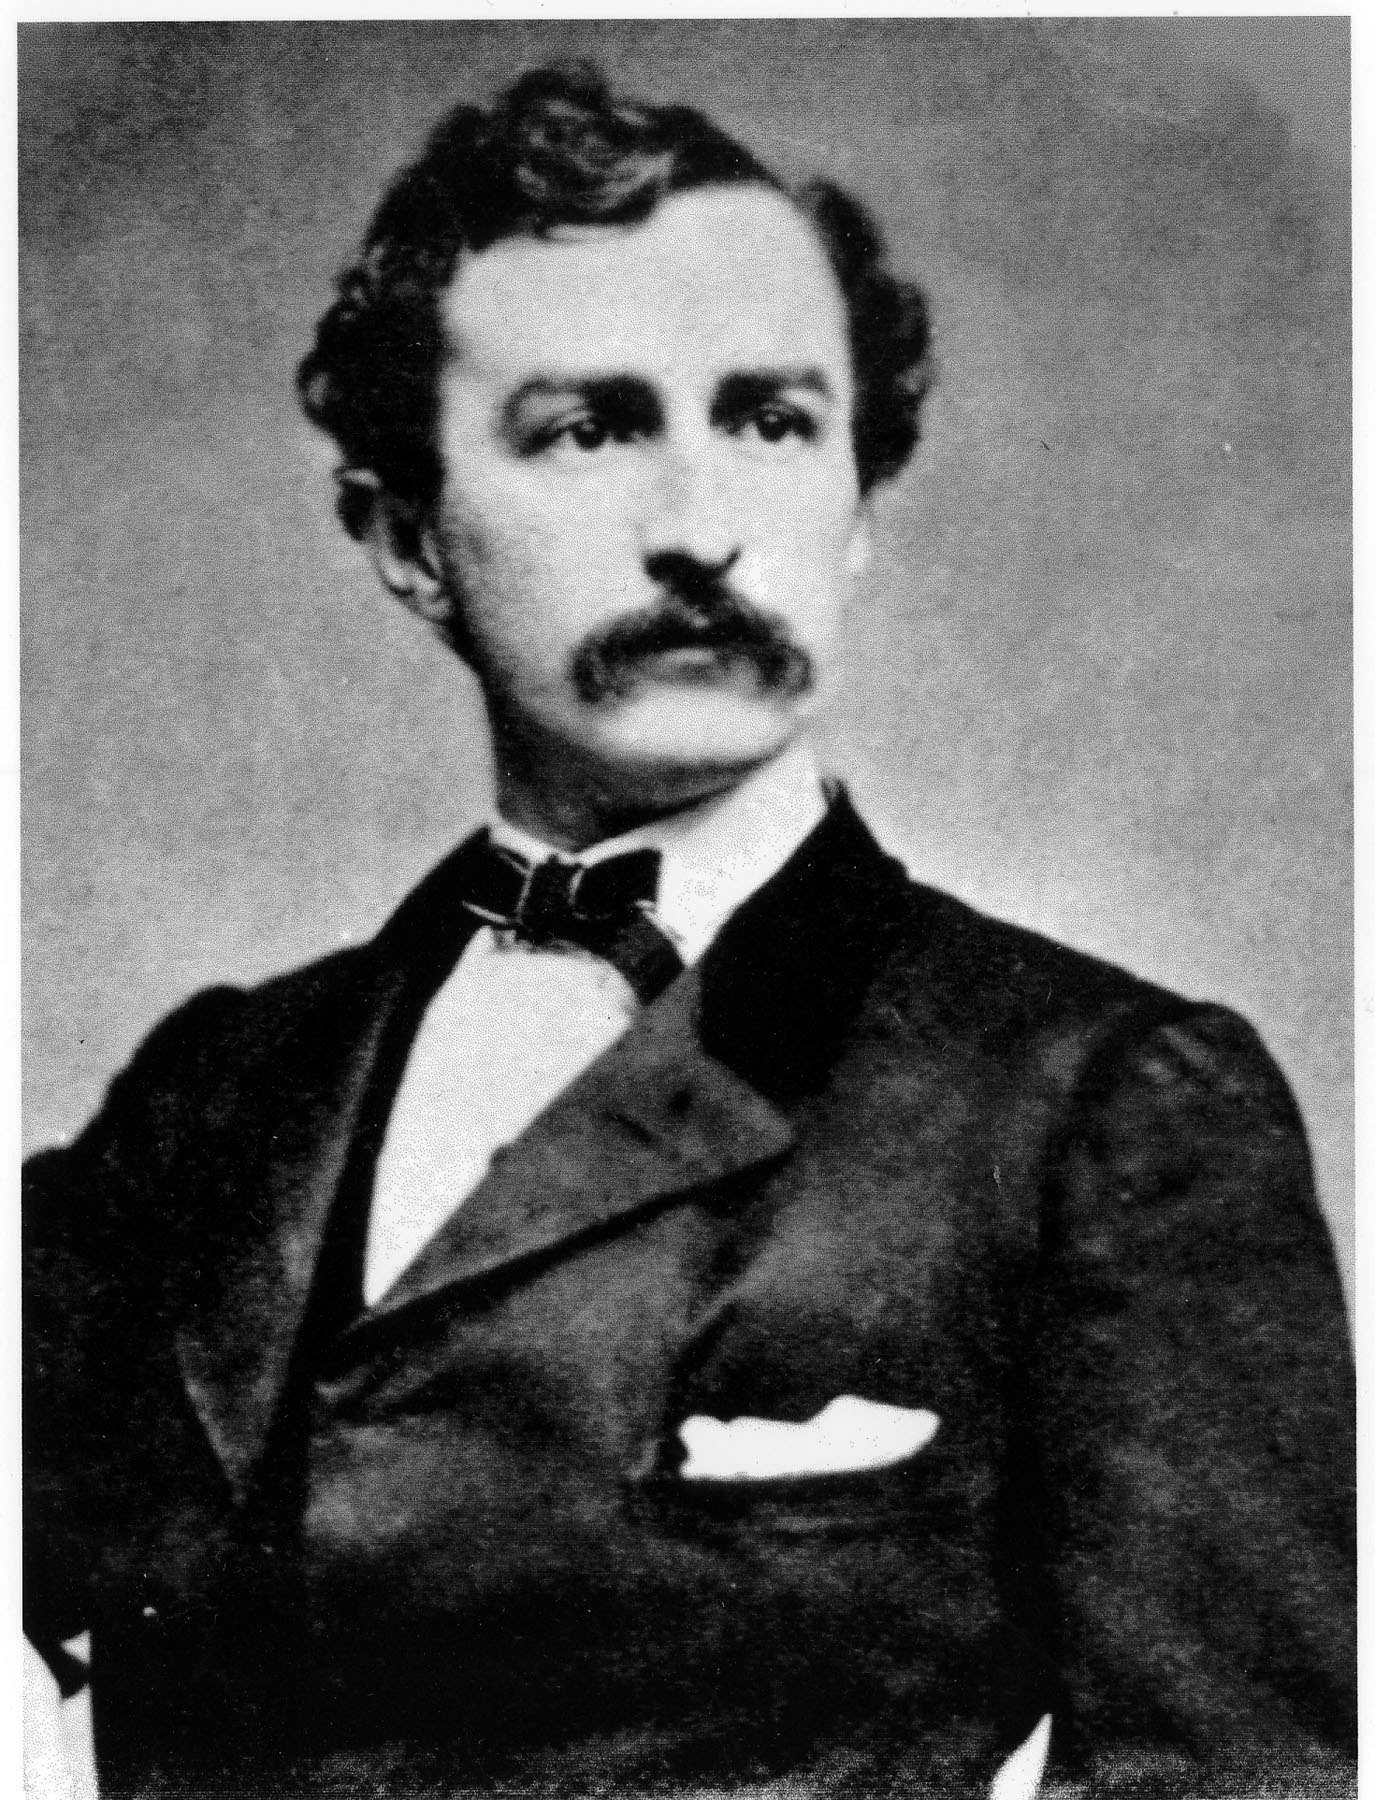 Who Shot Lincoln The Missing Pages Of John Wilkes Booth S